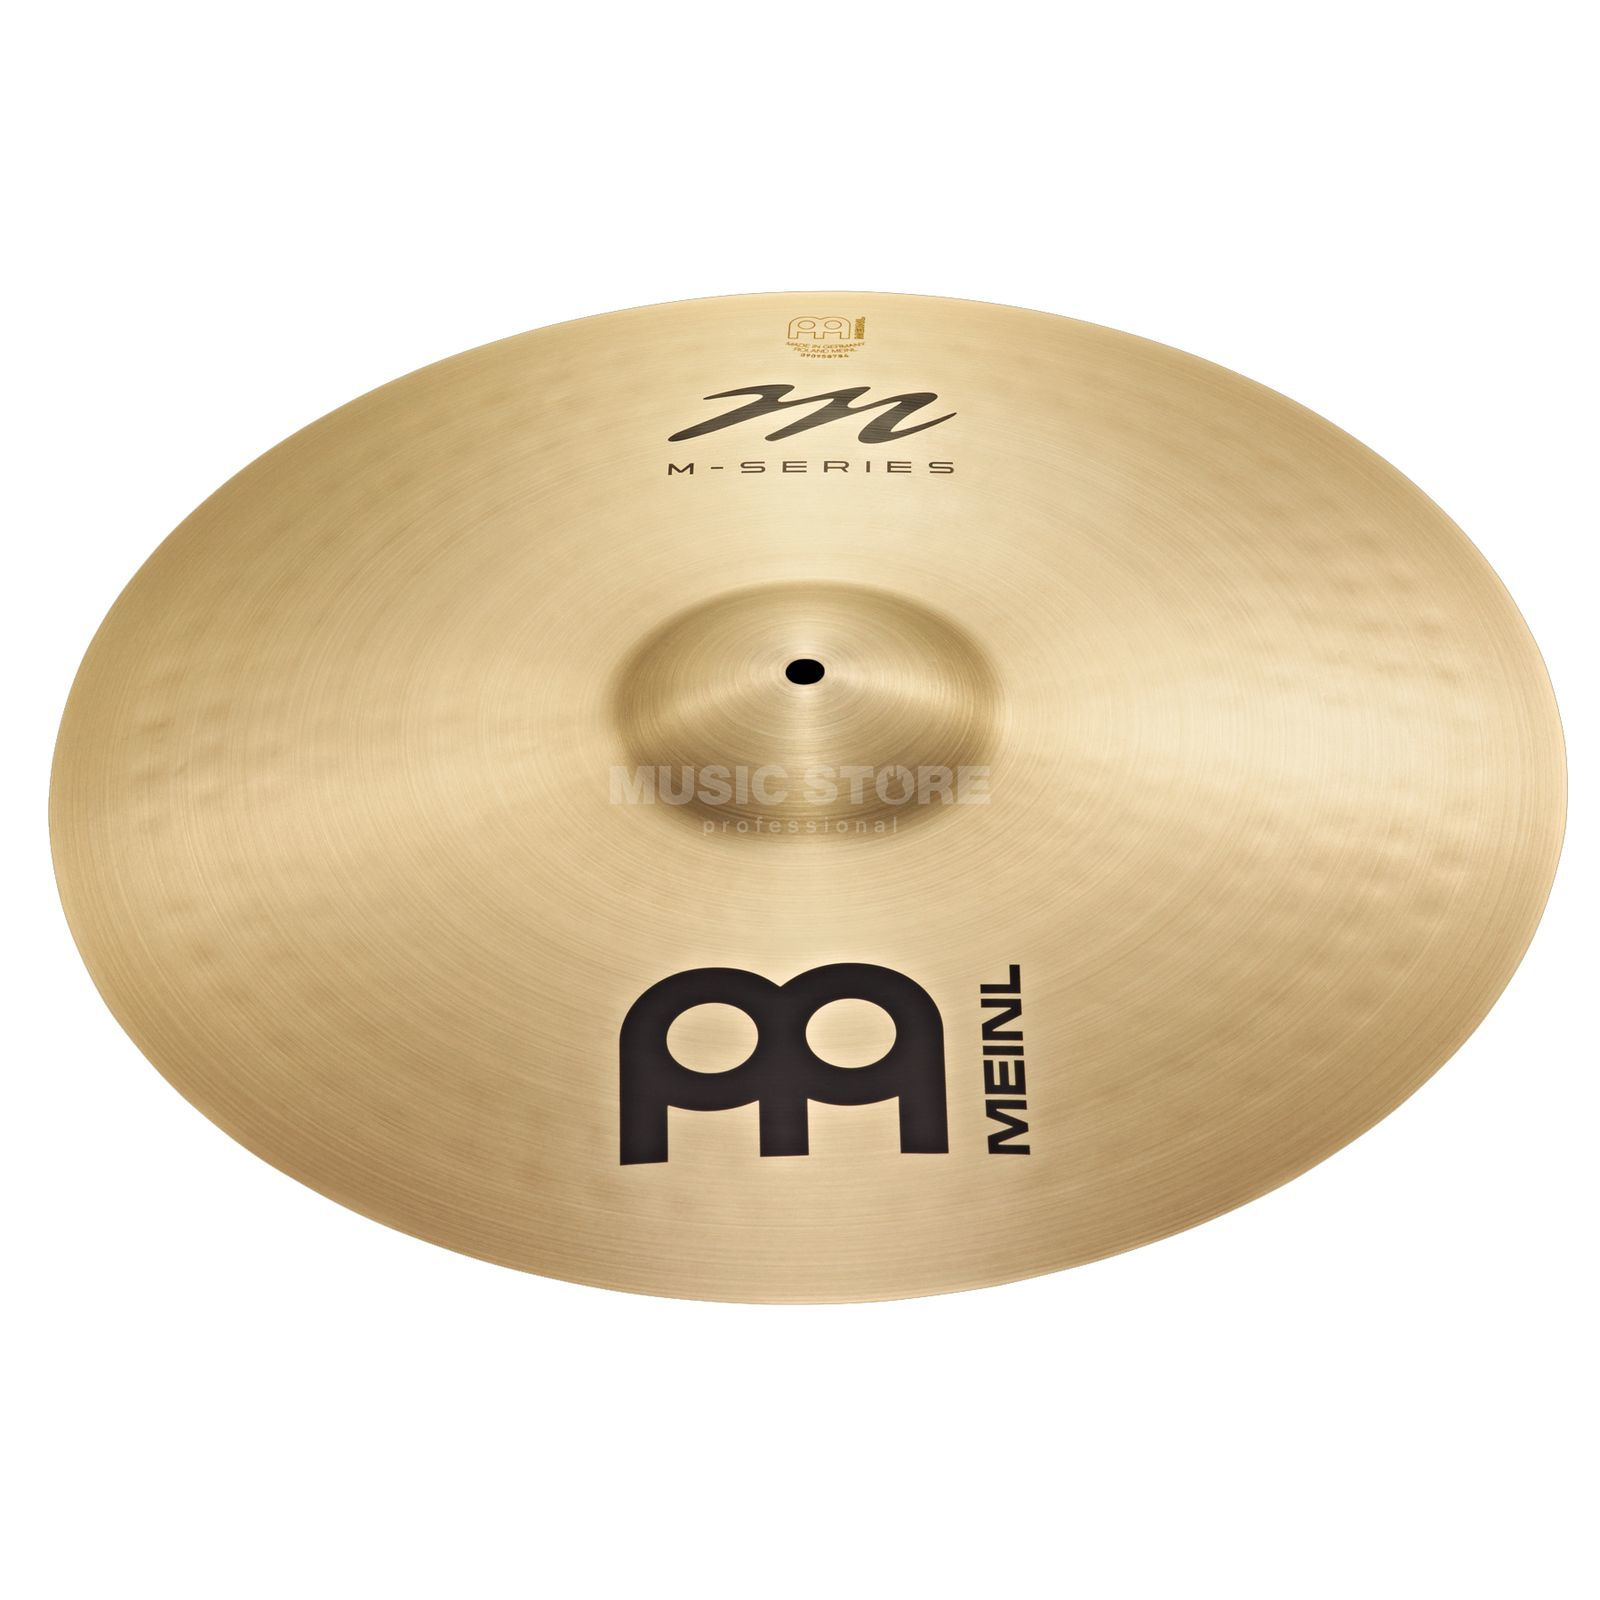 Meinl M-Series Heavy Ride MS20HR Produktbild